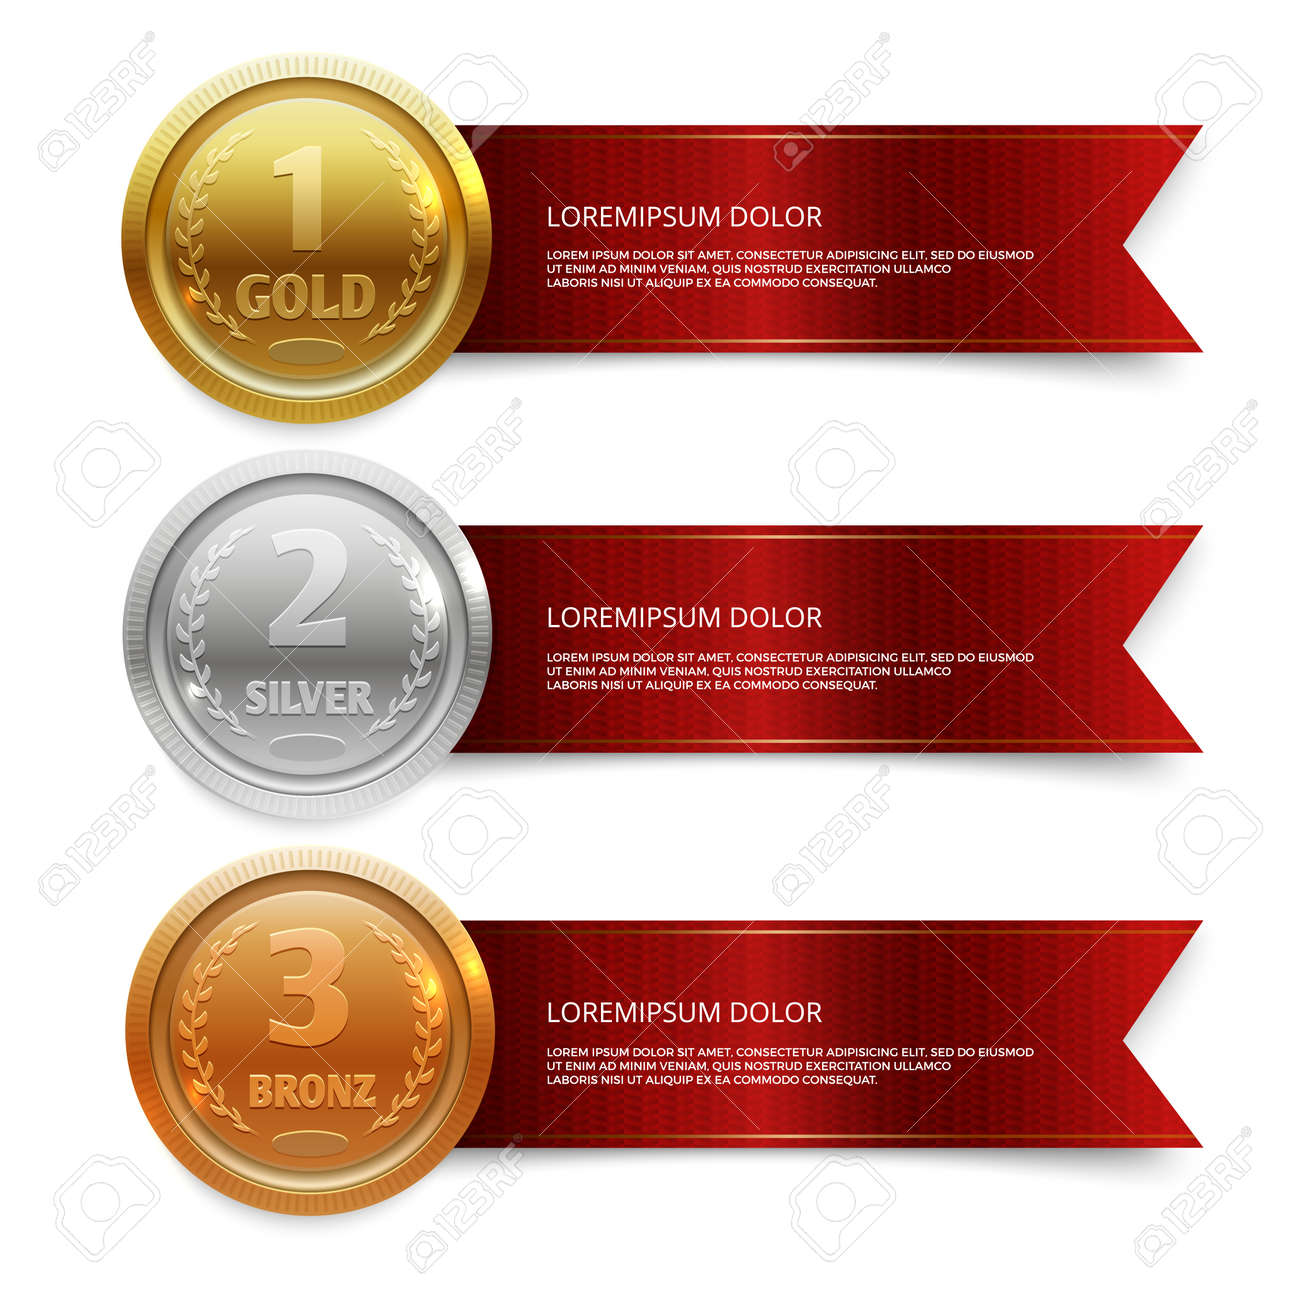 Champion gold, silver and bronze medails with red ribbon banners. Winner award competition, prize medal and banner for text. Vector illustration - 167390355